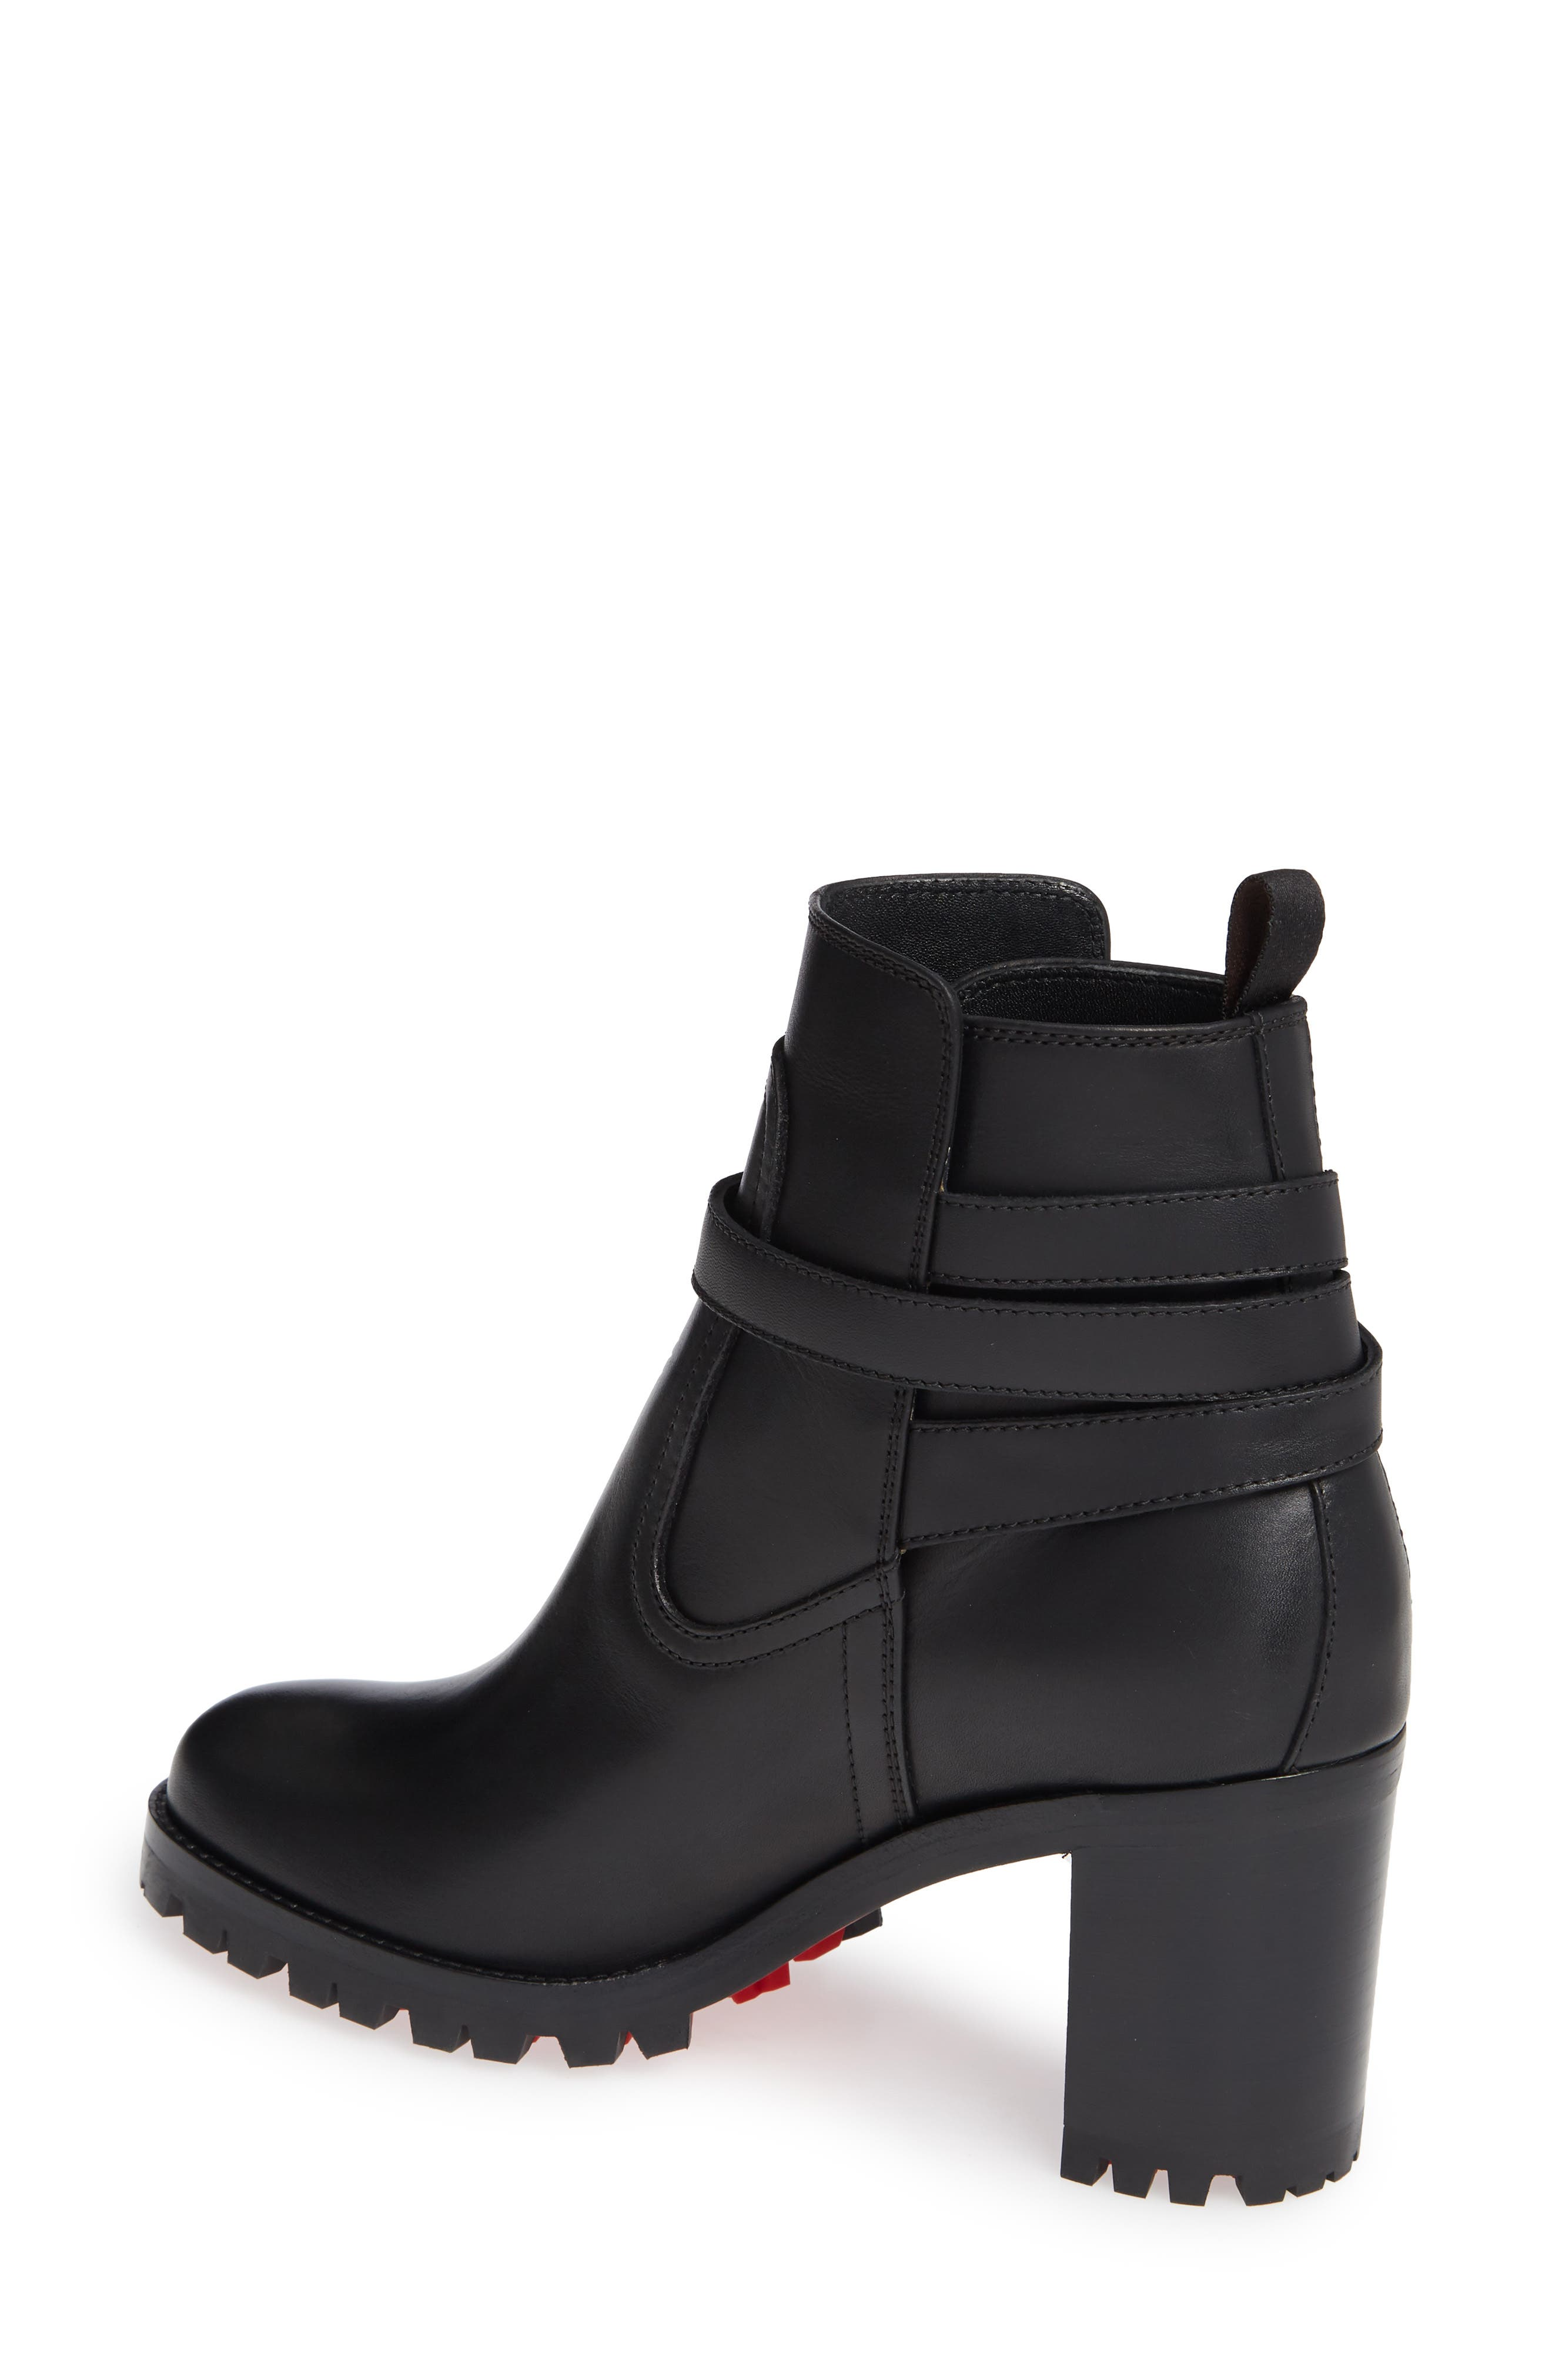 Trapeurdekoi Strappy Bootie,                             Alternate thumbnail 2, color,                             BLACK